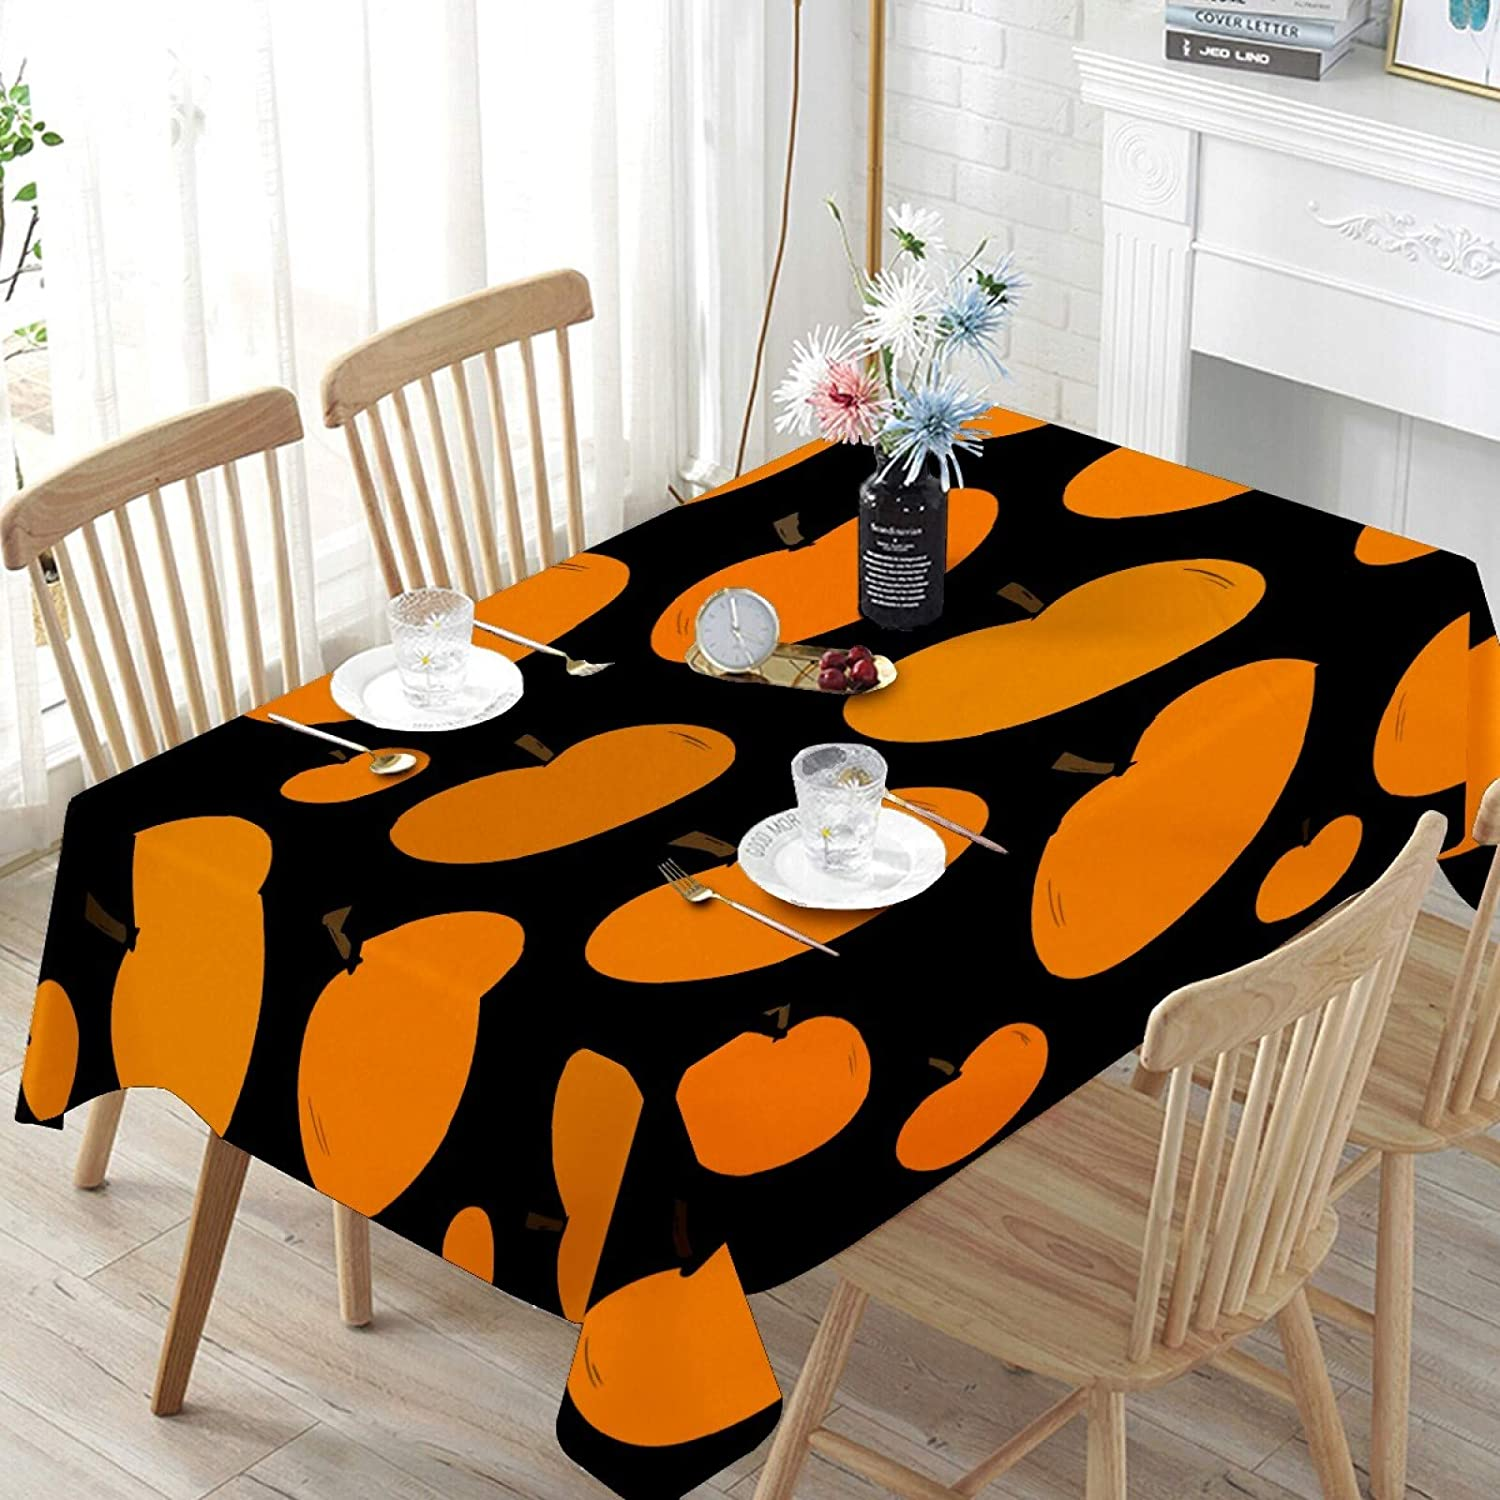 N\O Tablecloth Rectangle - Stain Resistant Pumpkins Halloween Decoration Washable Table Cloth for Outdoor Picnic Holiday Dinner 54 x 54 Inch